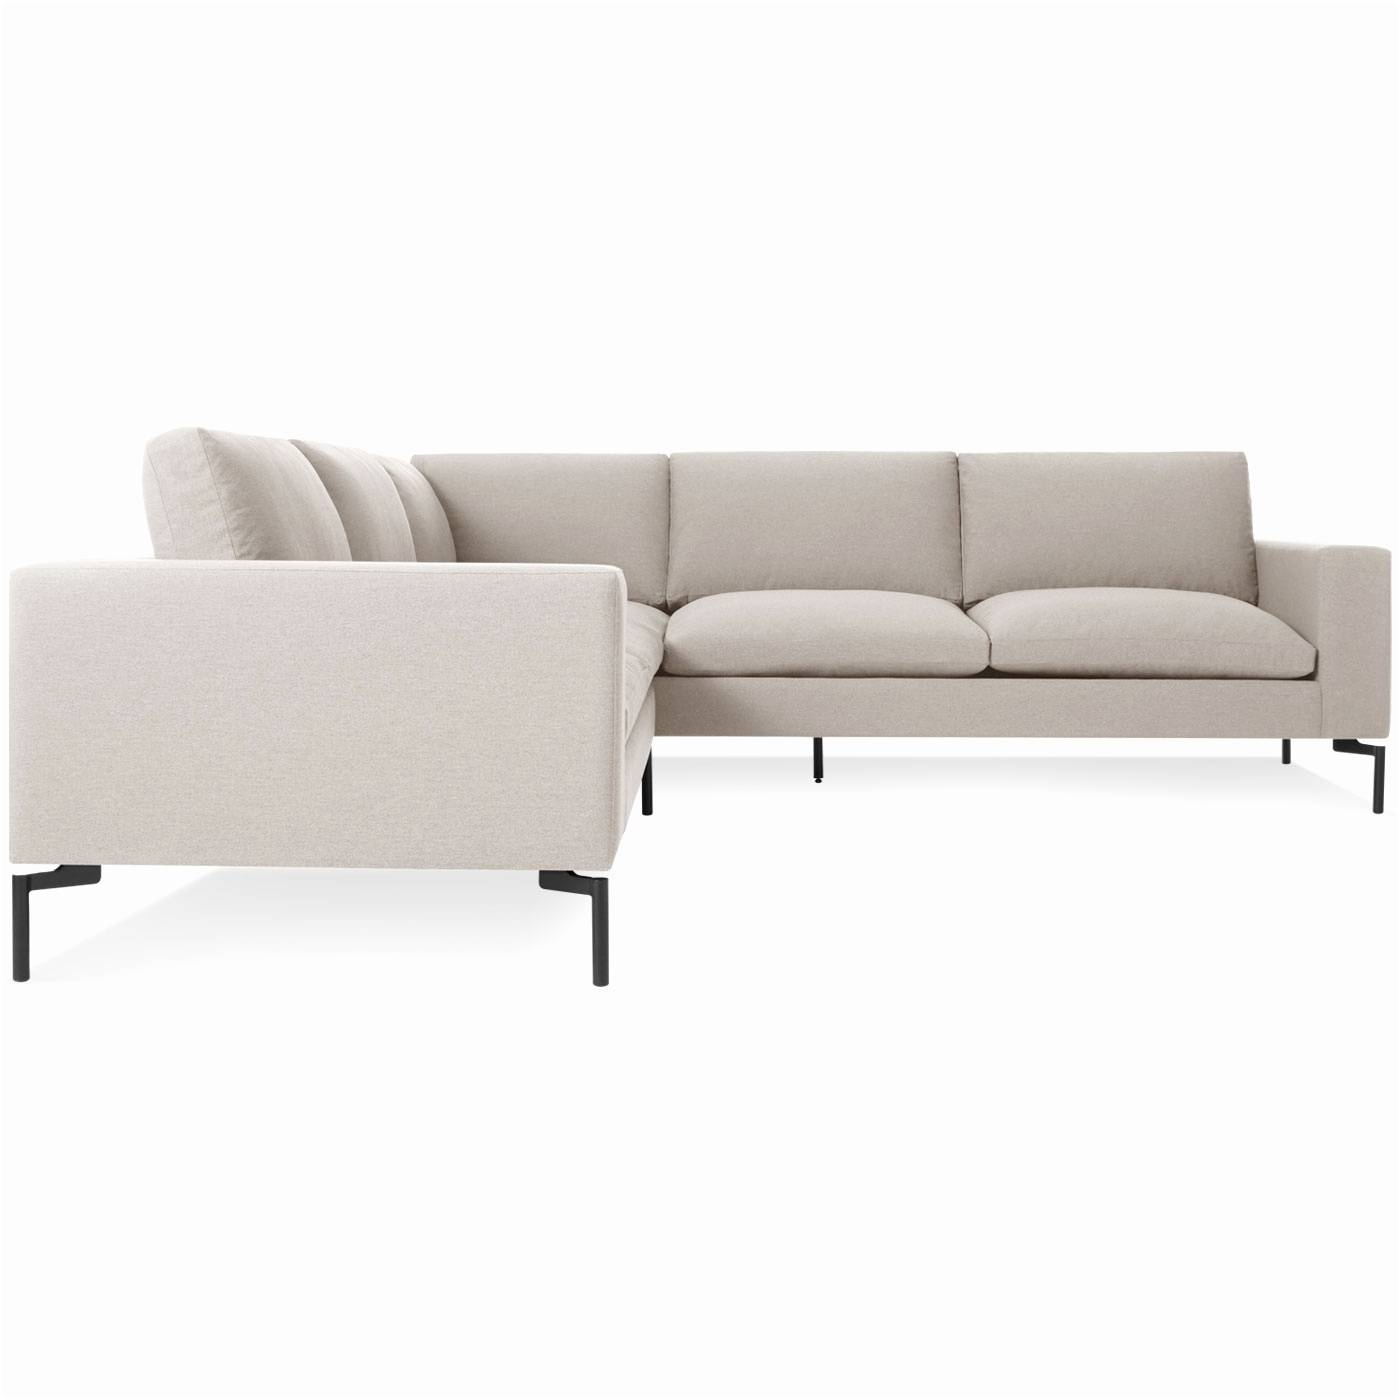 Beautiful Small Scale Sofas Elegant - Sofa Furnitures | Sofa with Modern Small Sectional Sofas (Image 2 of 15)